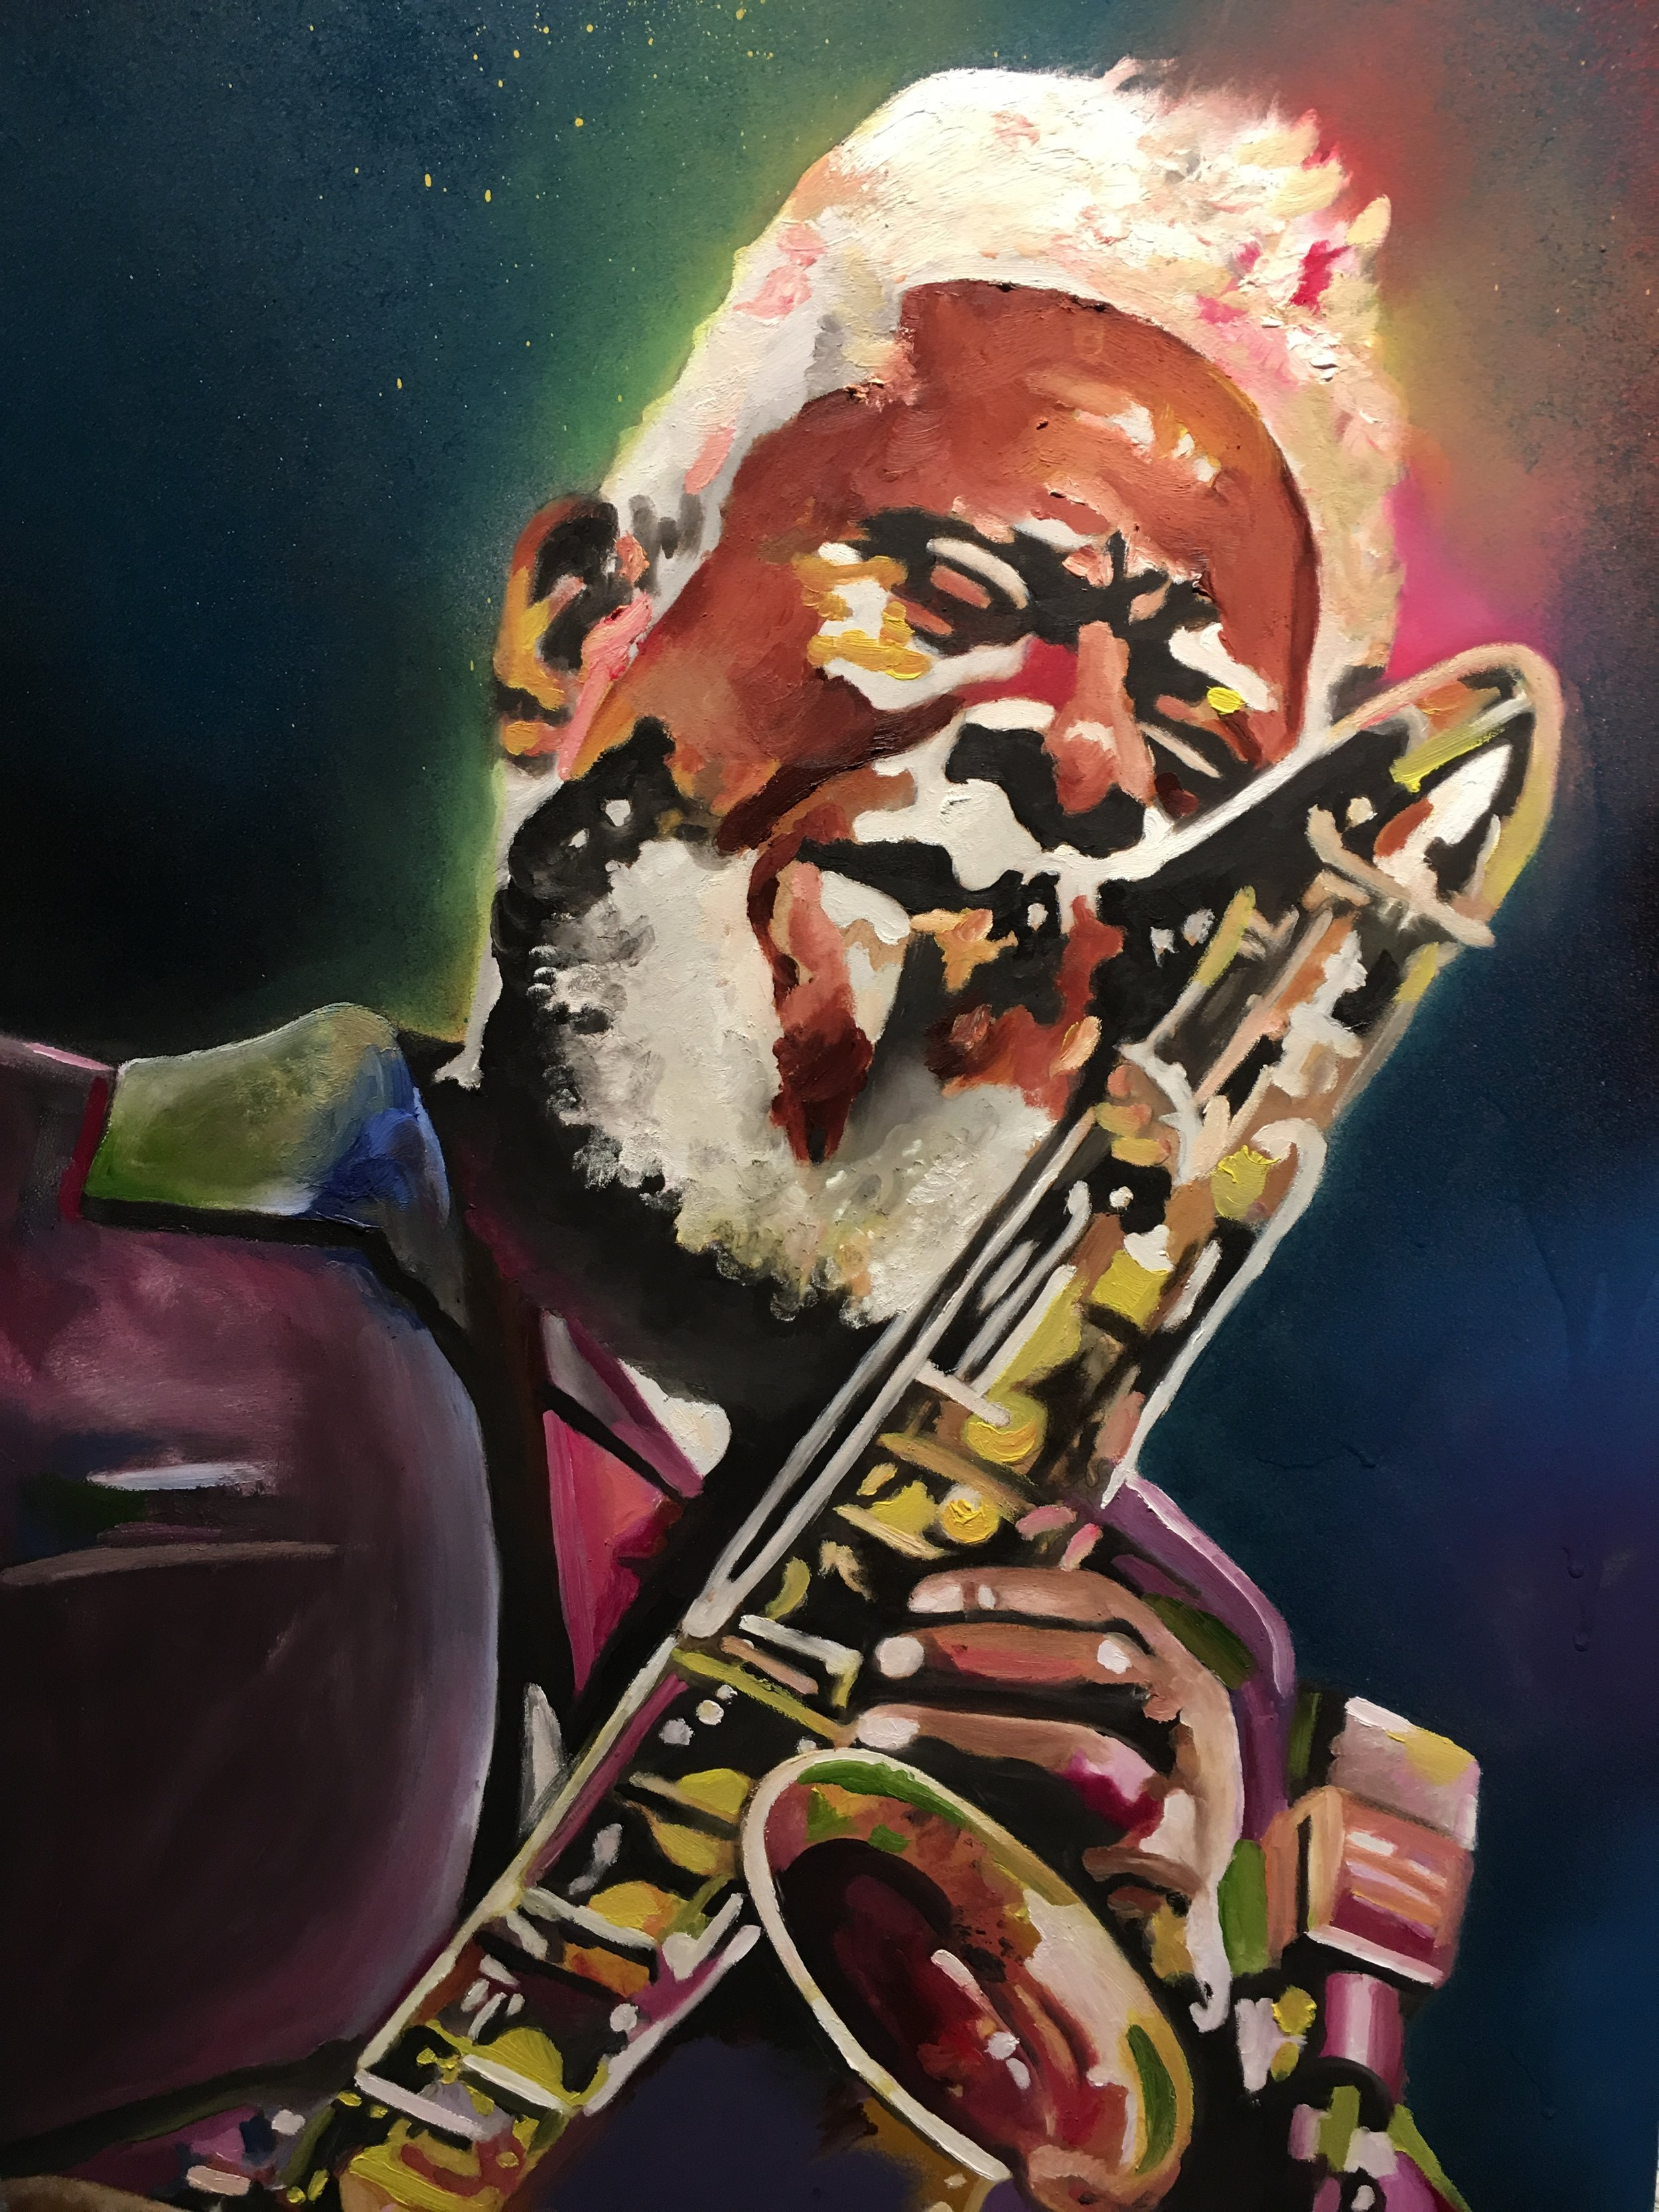 """Pharoah Sanders"" by Kacy Jackson, 48x24in, acrylic and spray paint on board"